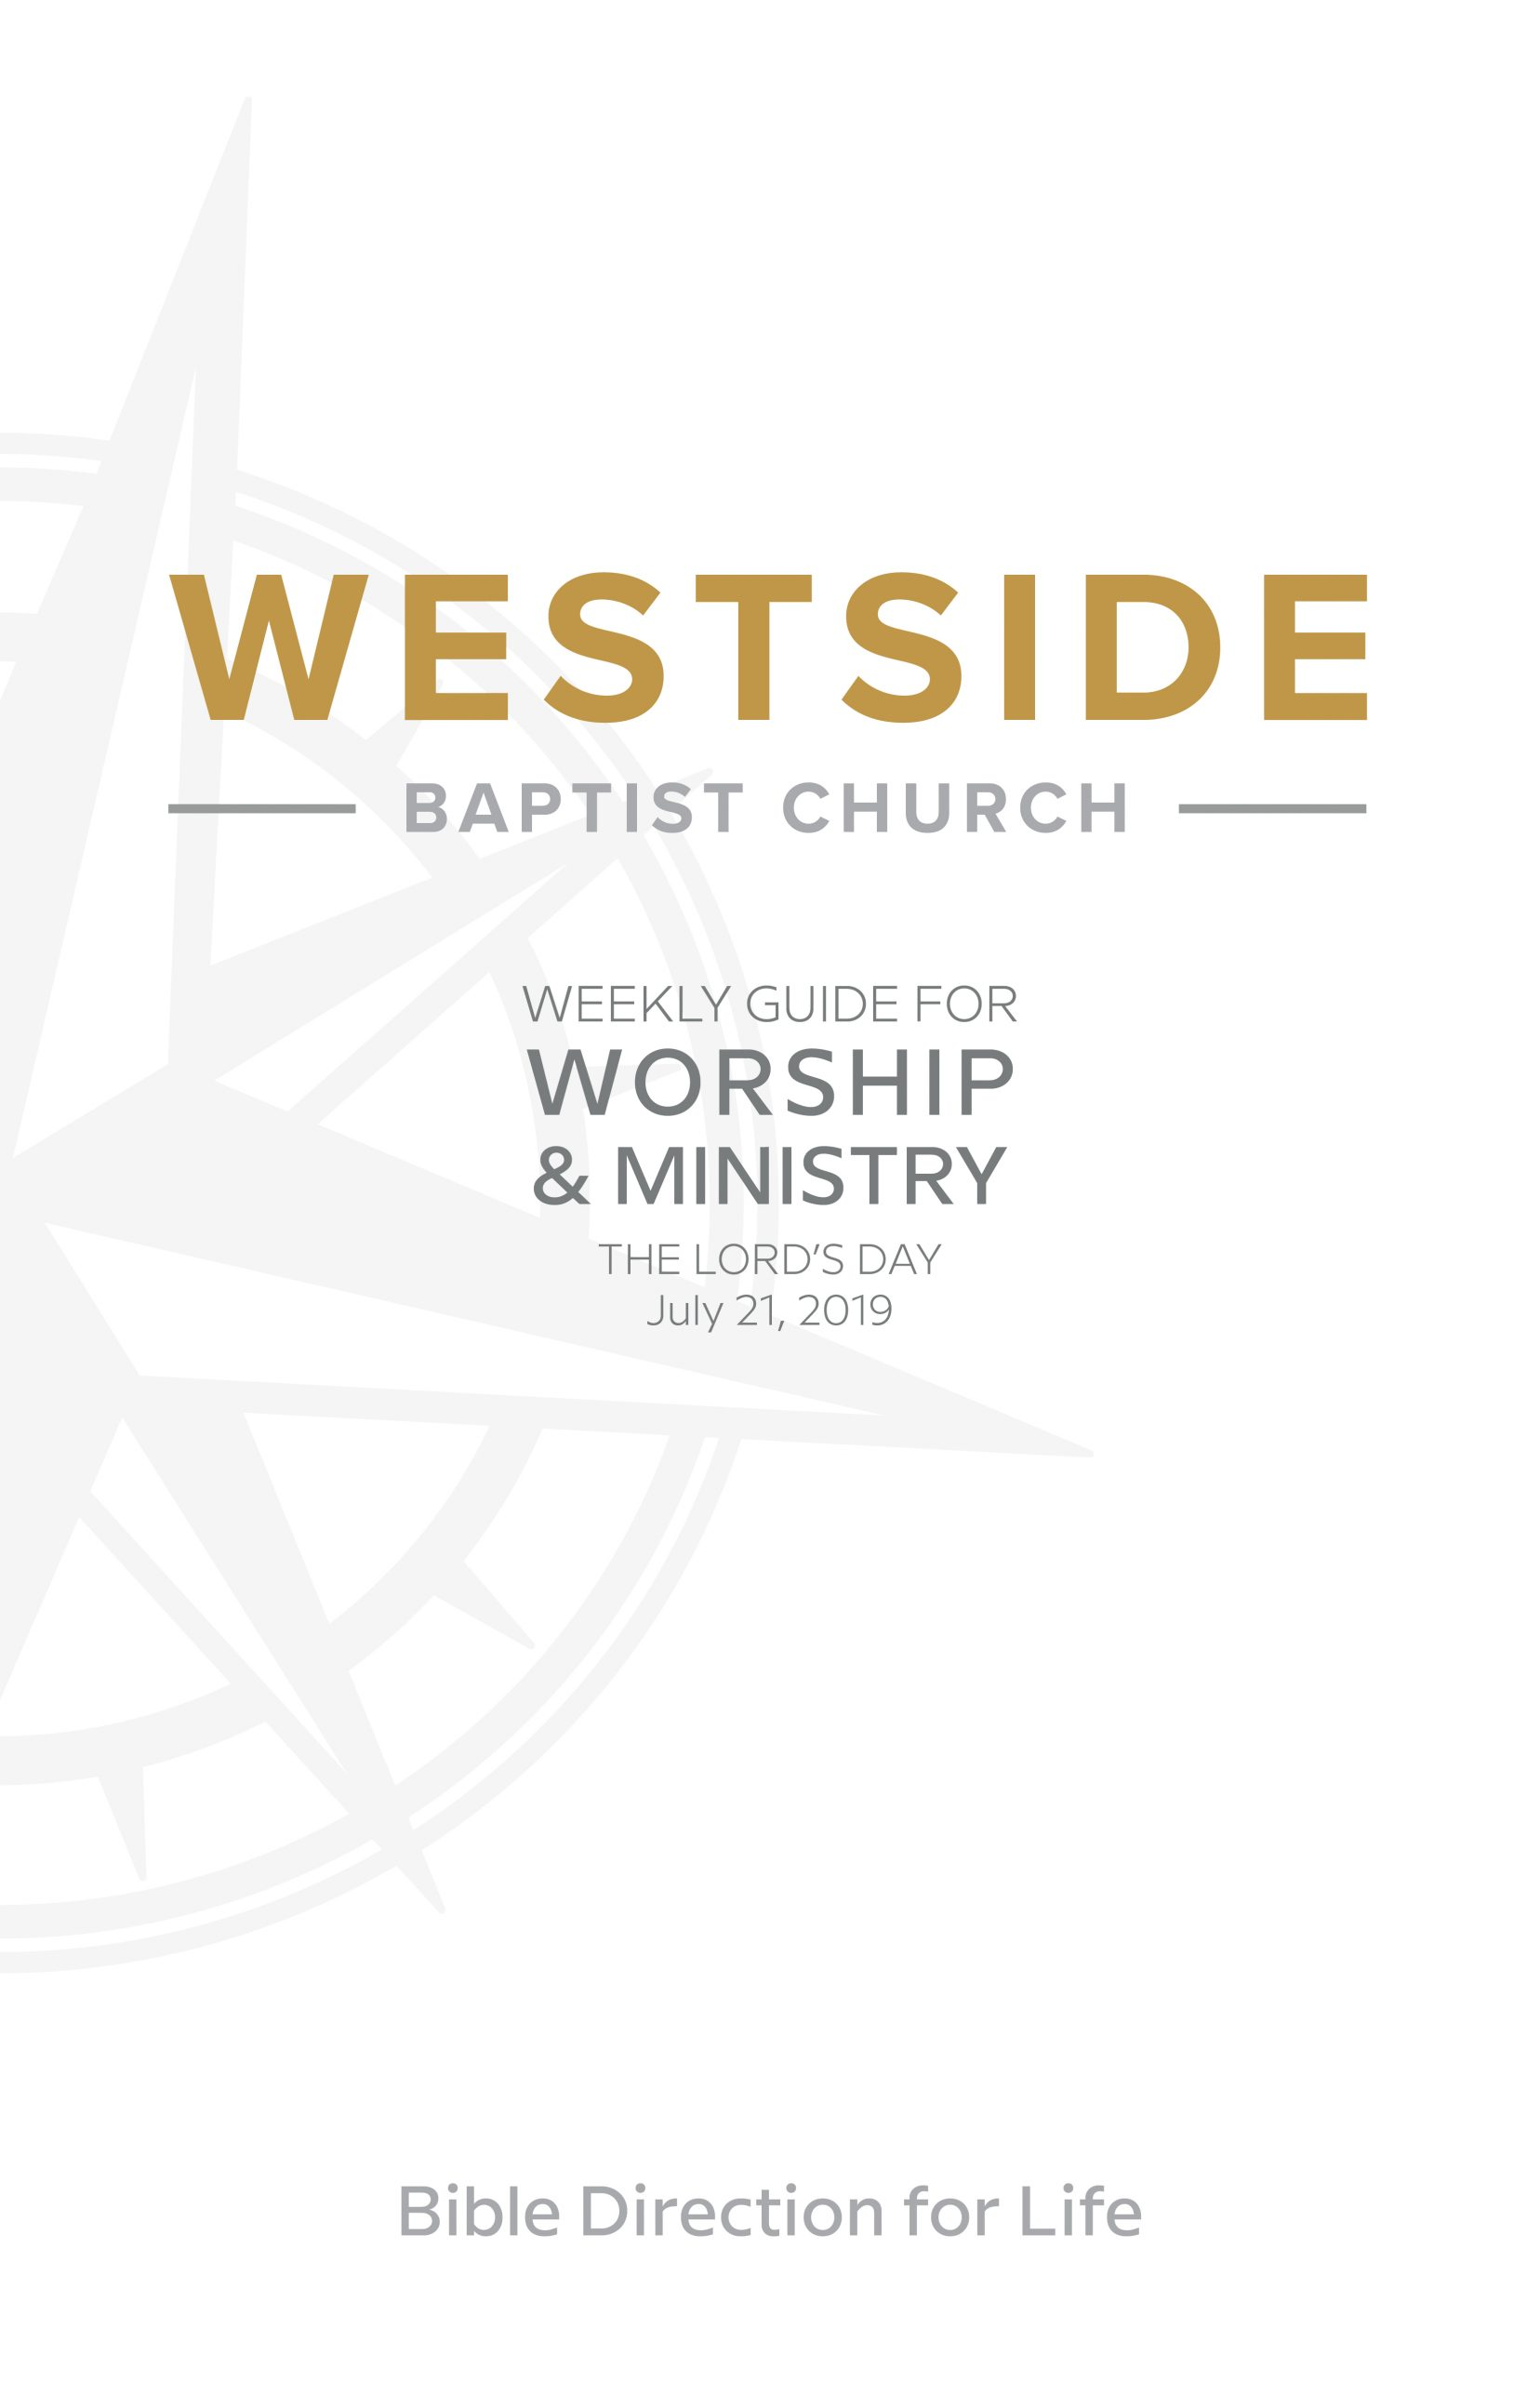 Weekly Guide for Worship and Ministry—July 21